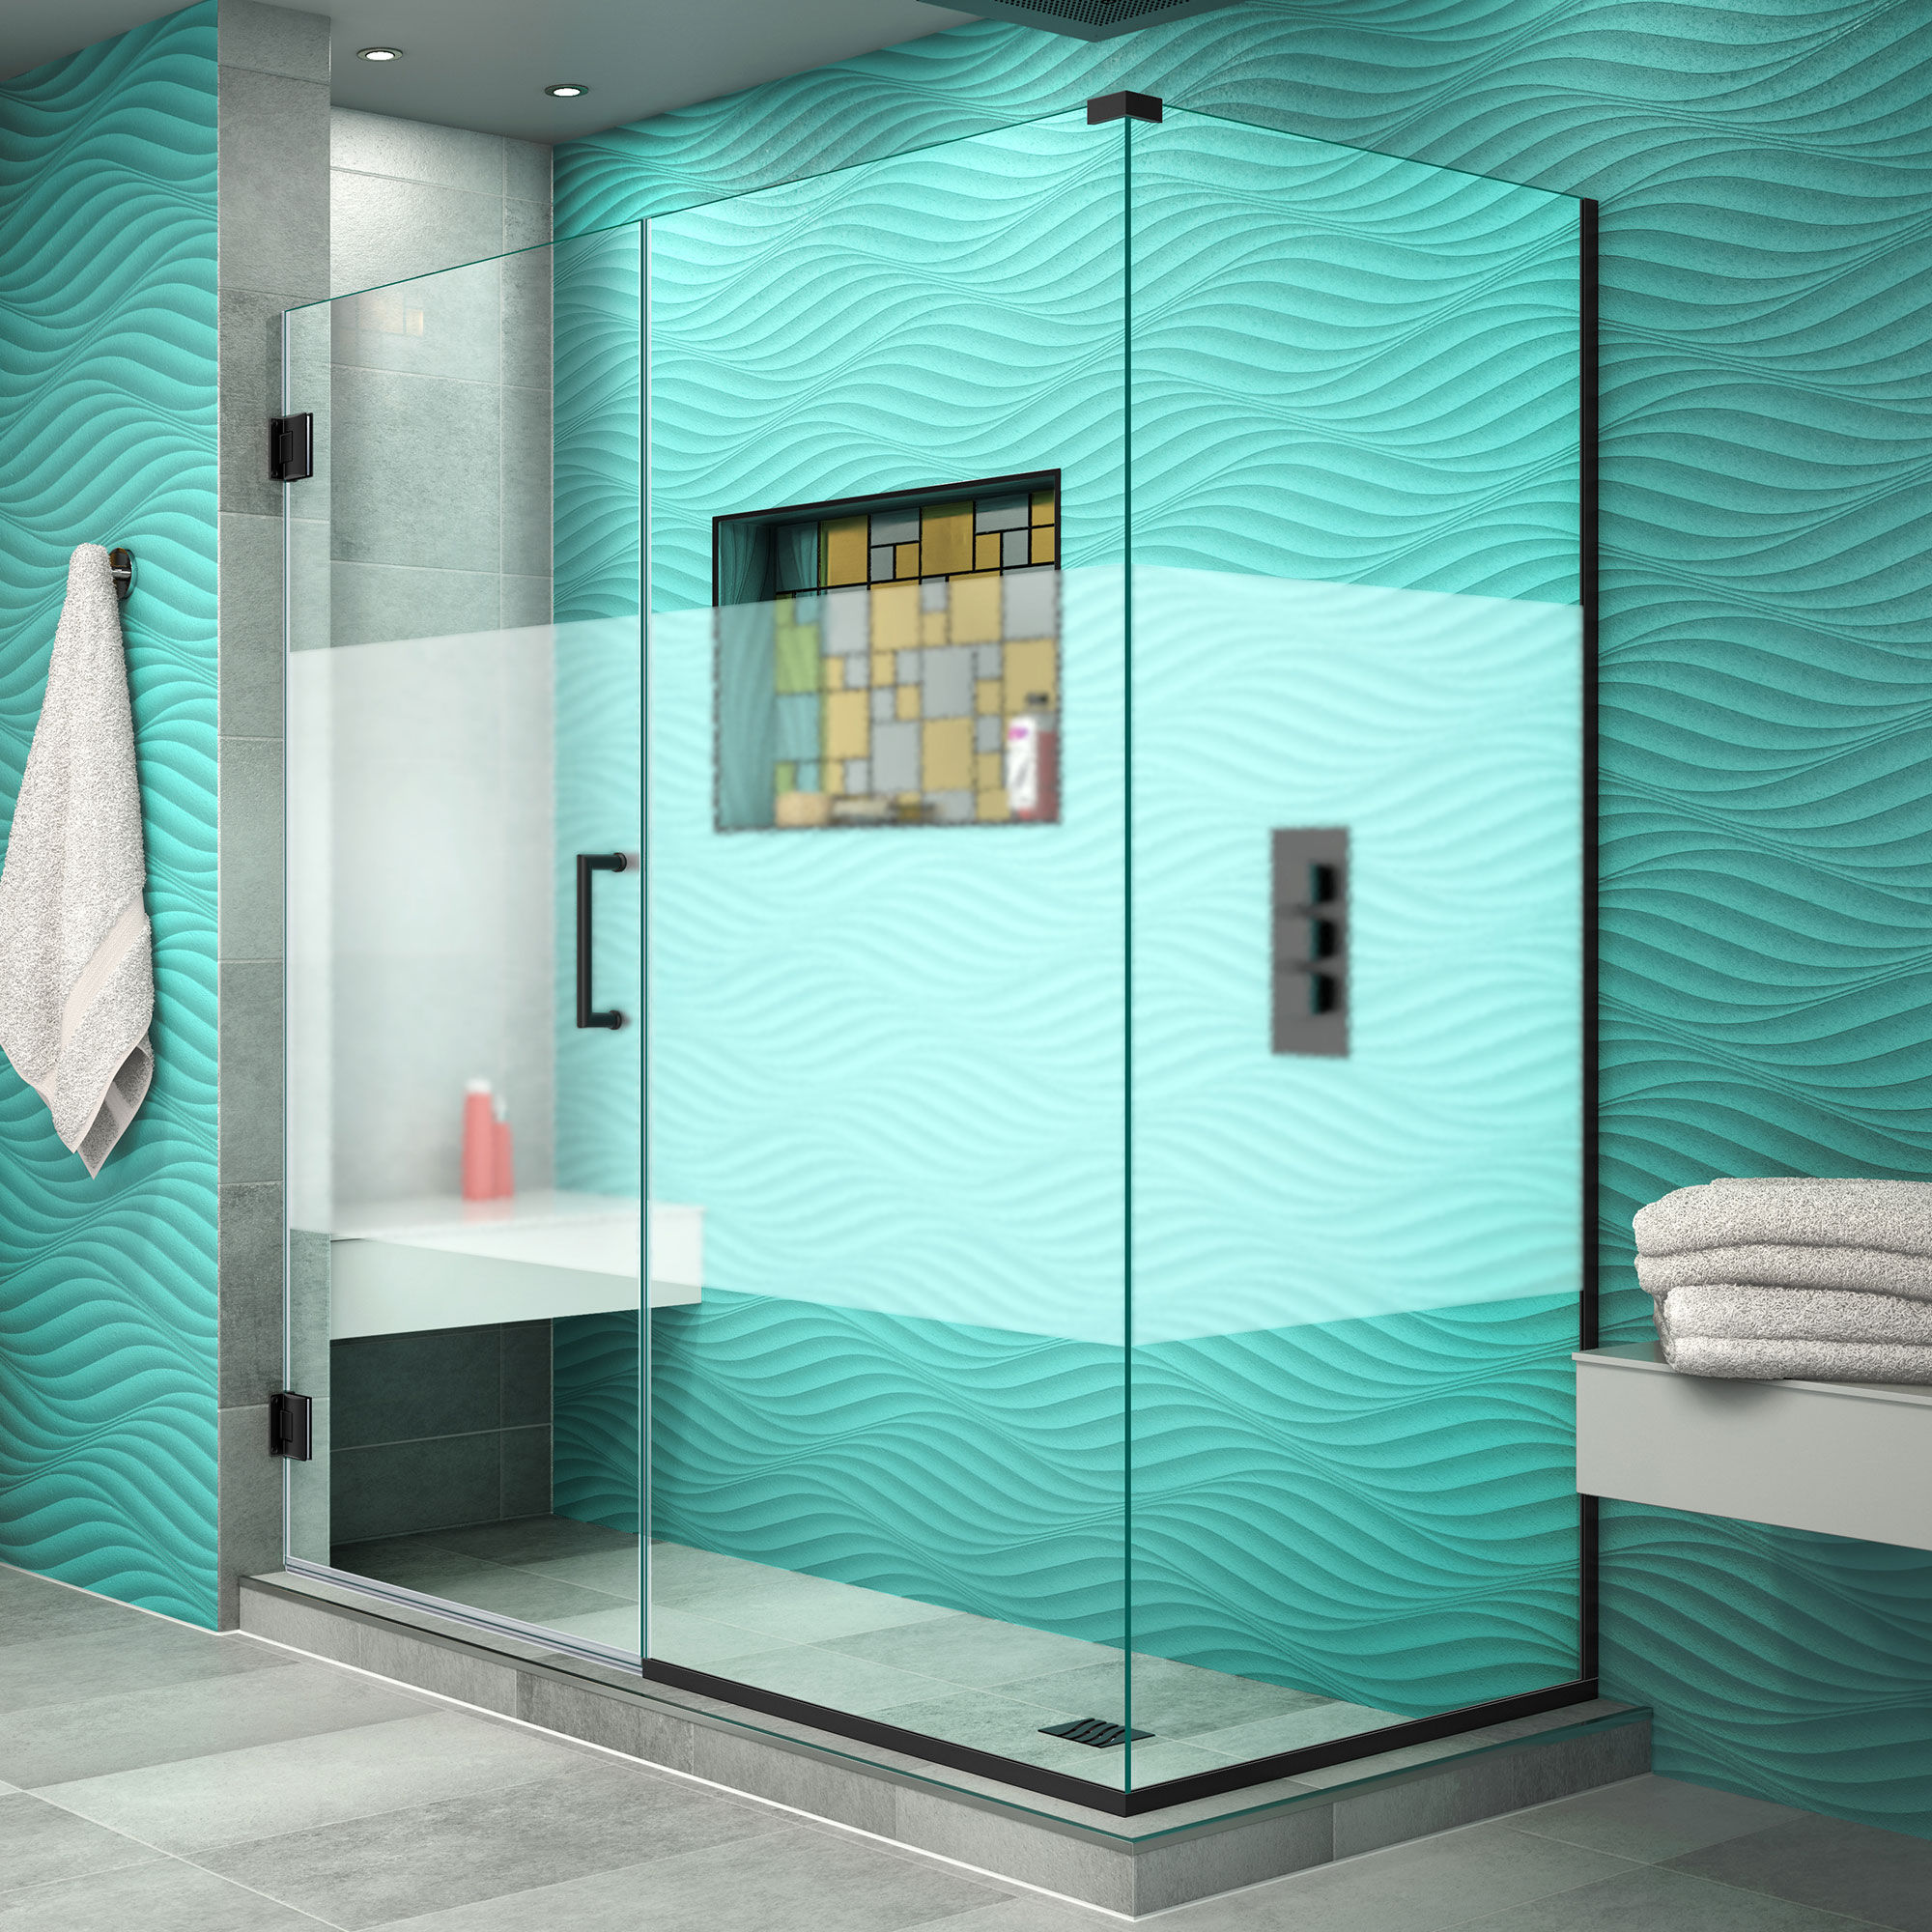 Dreamline Unidoor Plus 60 In W X 30 3 8 In D X 72 In H Frameless Hinged Shower Enclosure Frosted Band Brushed Nickel